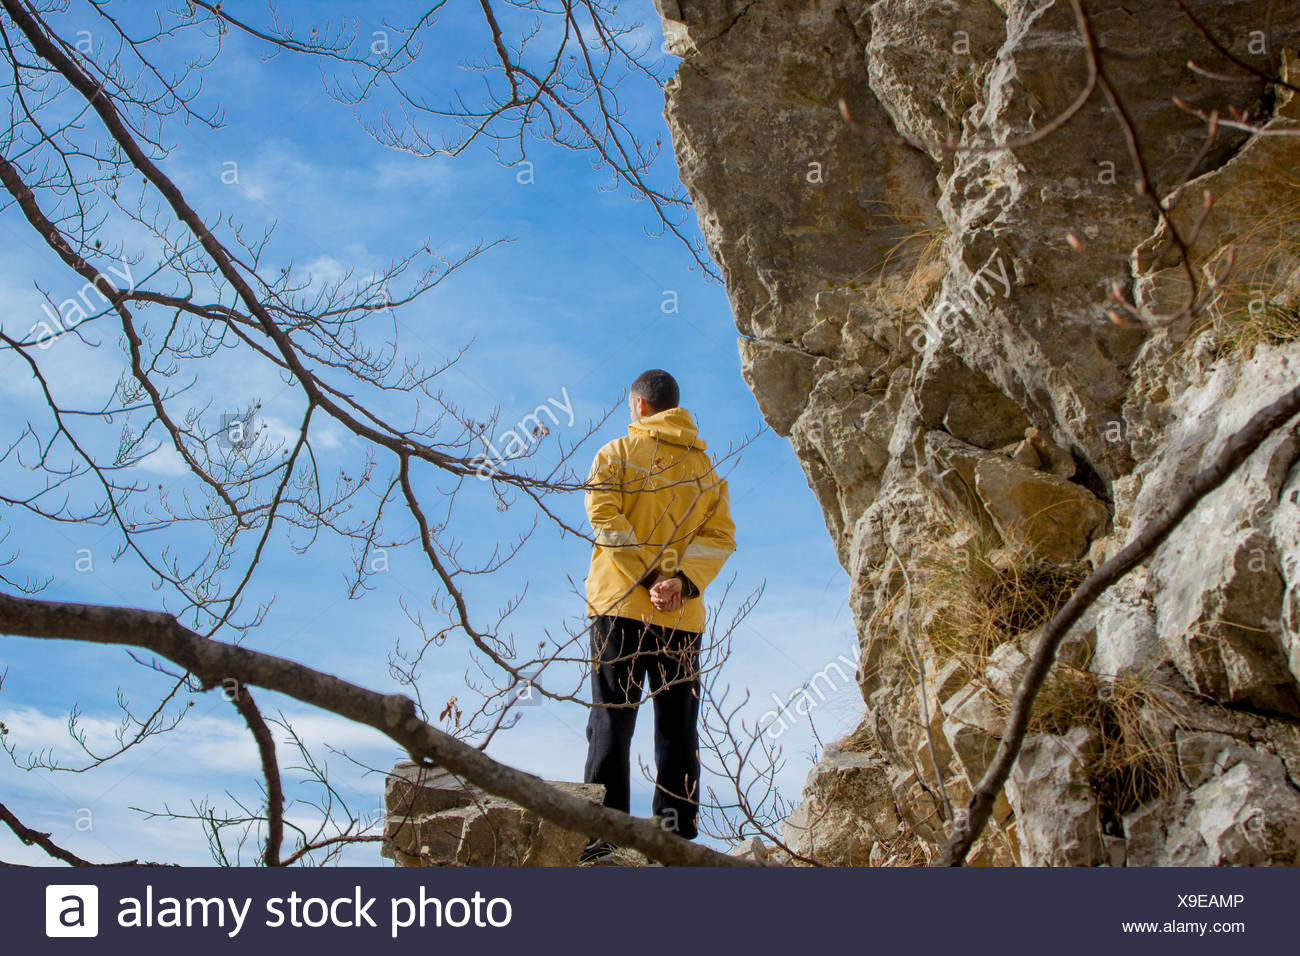 Hiker standing on the edge of a cliff and looking ahead - Stock Image